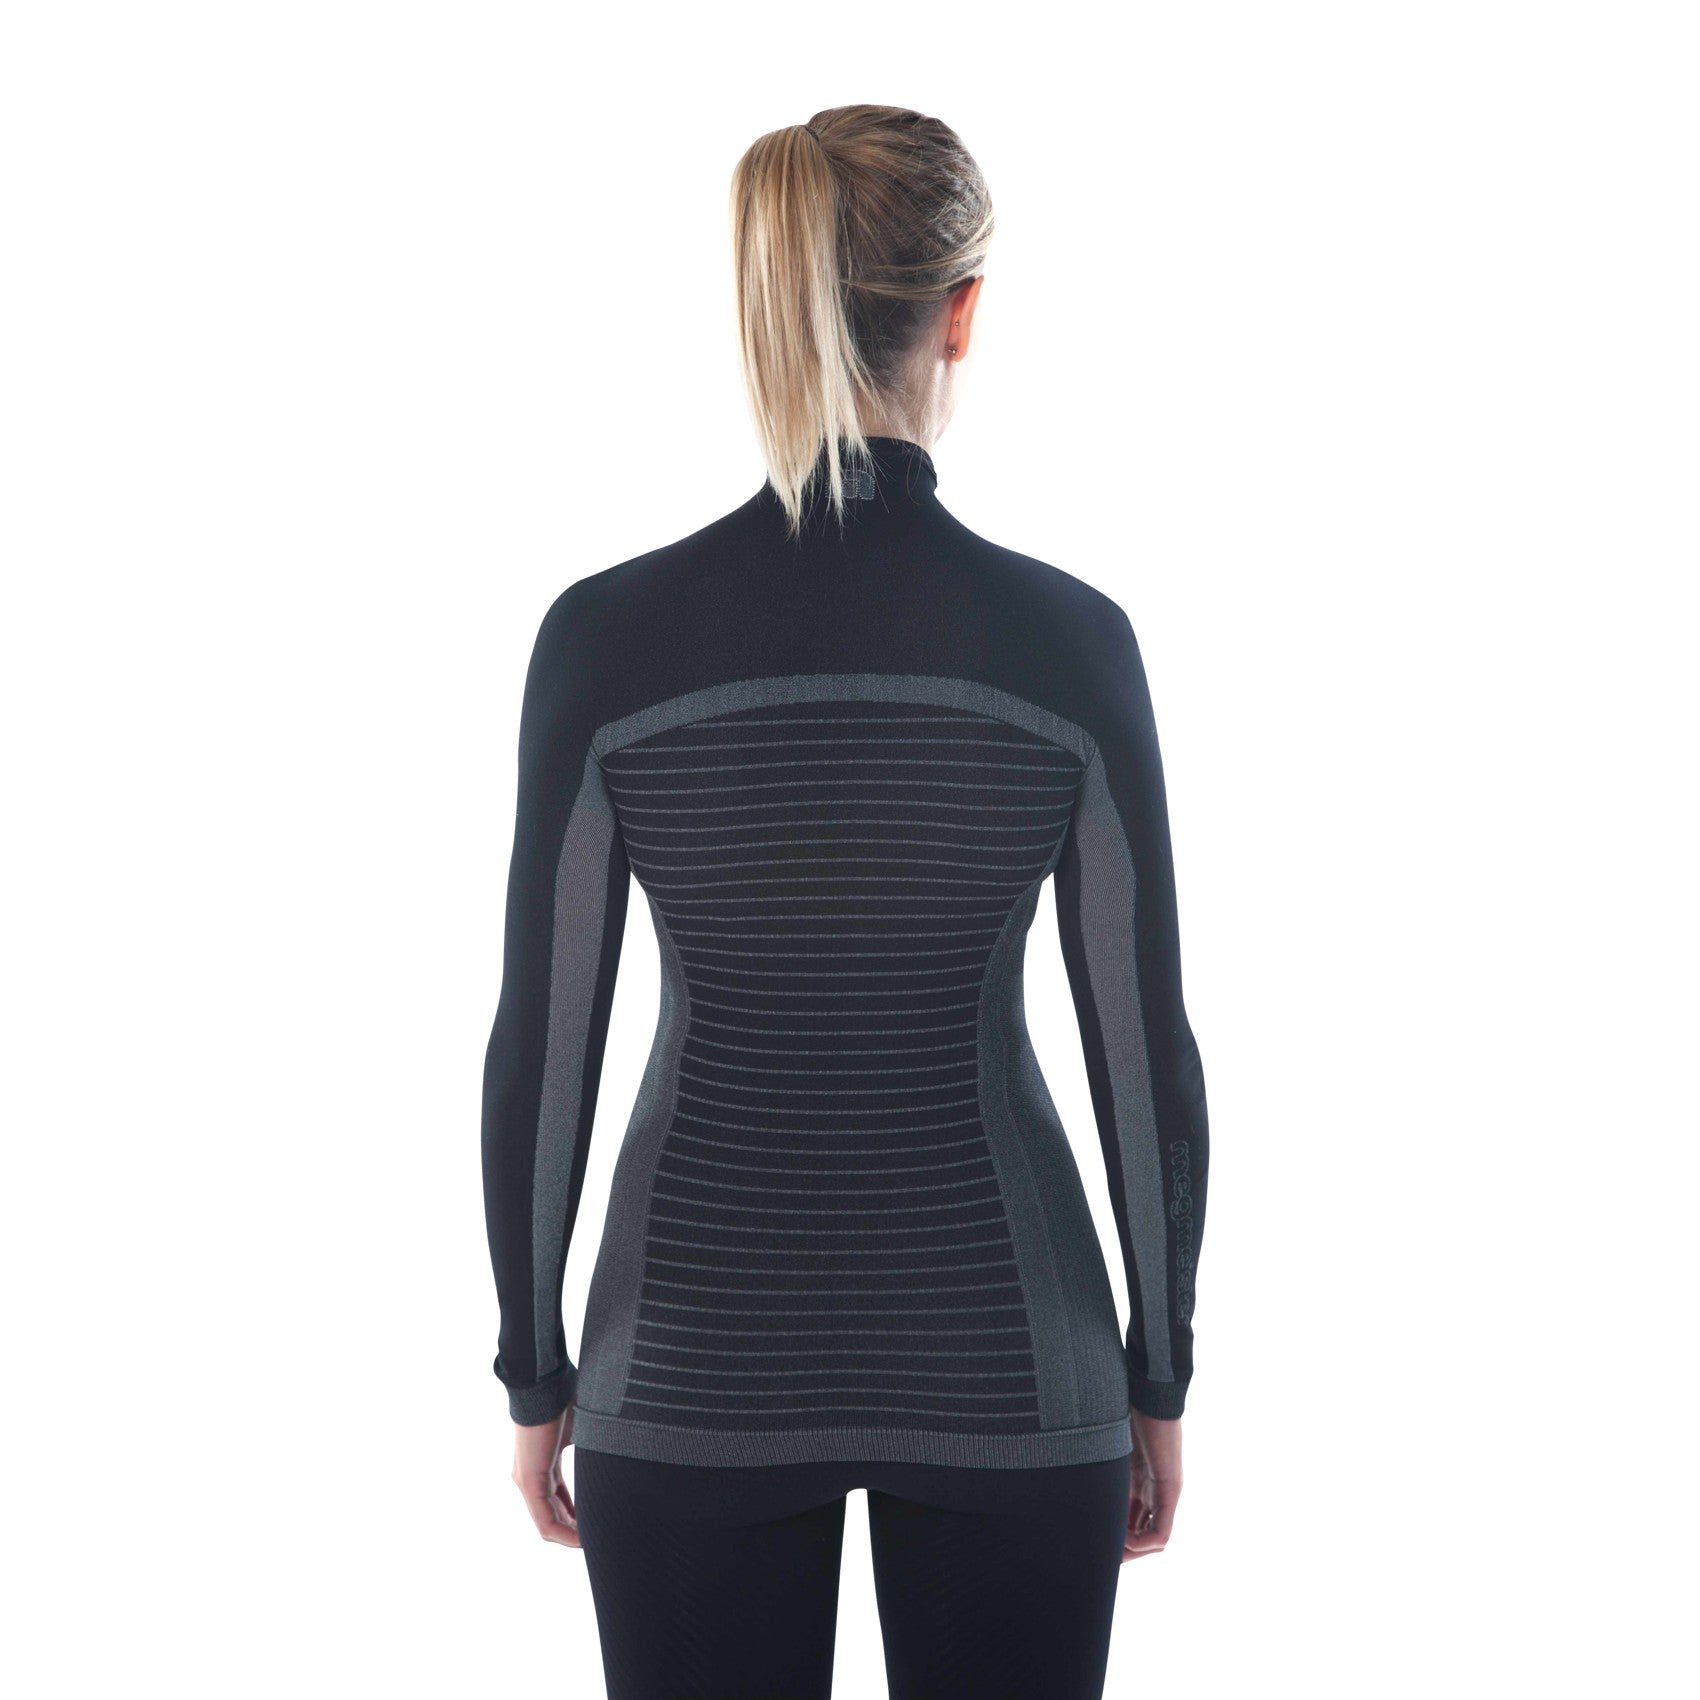 megmeister-womens-drynamo-high-neck-base-layer-black-back-view